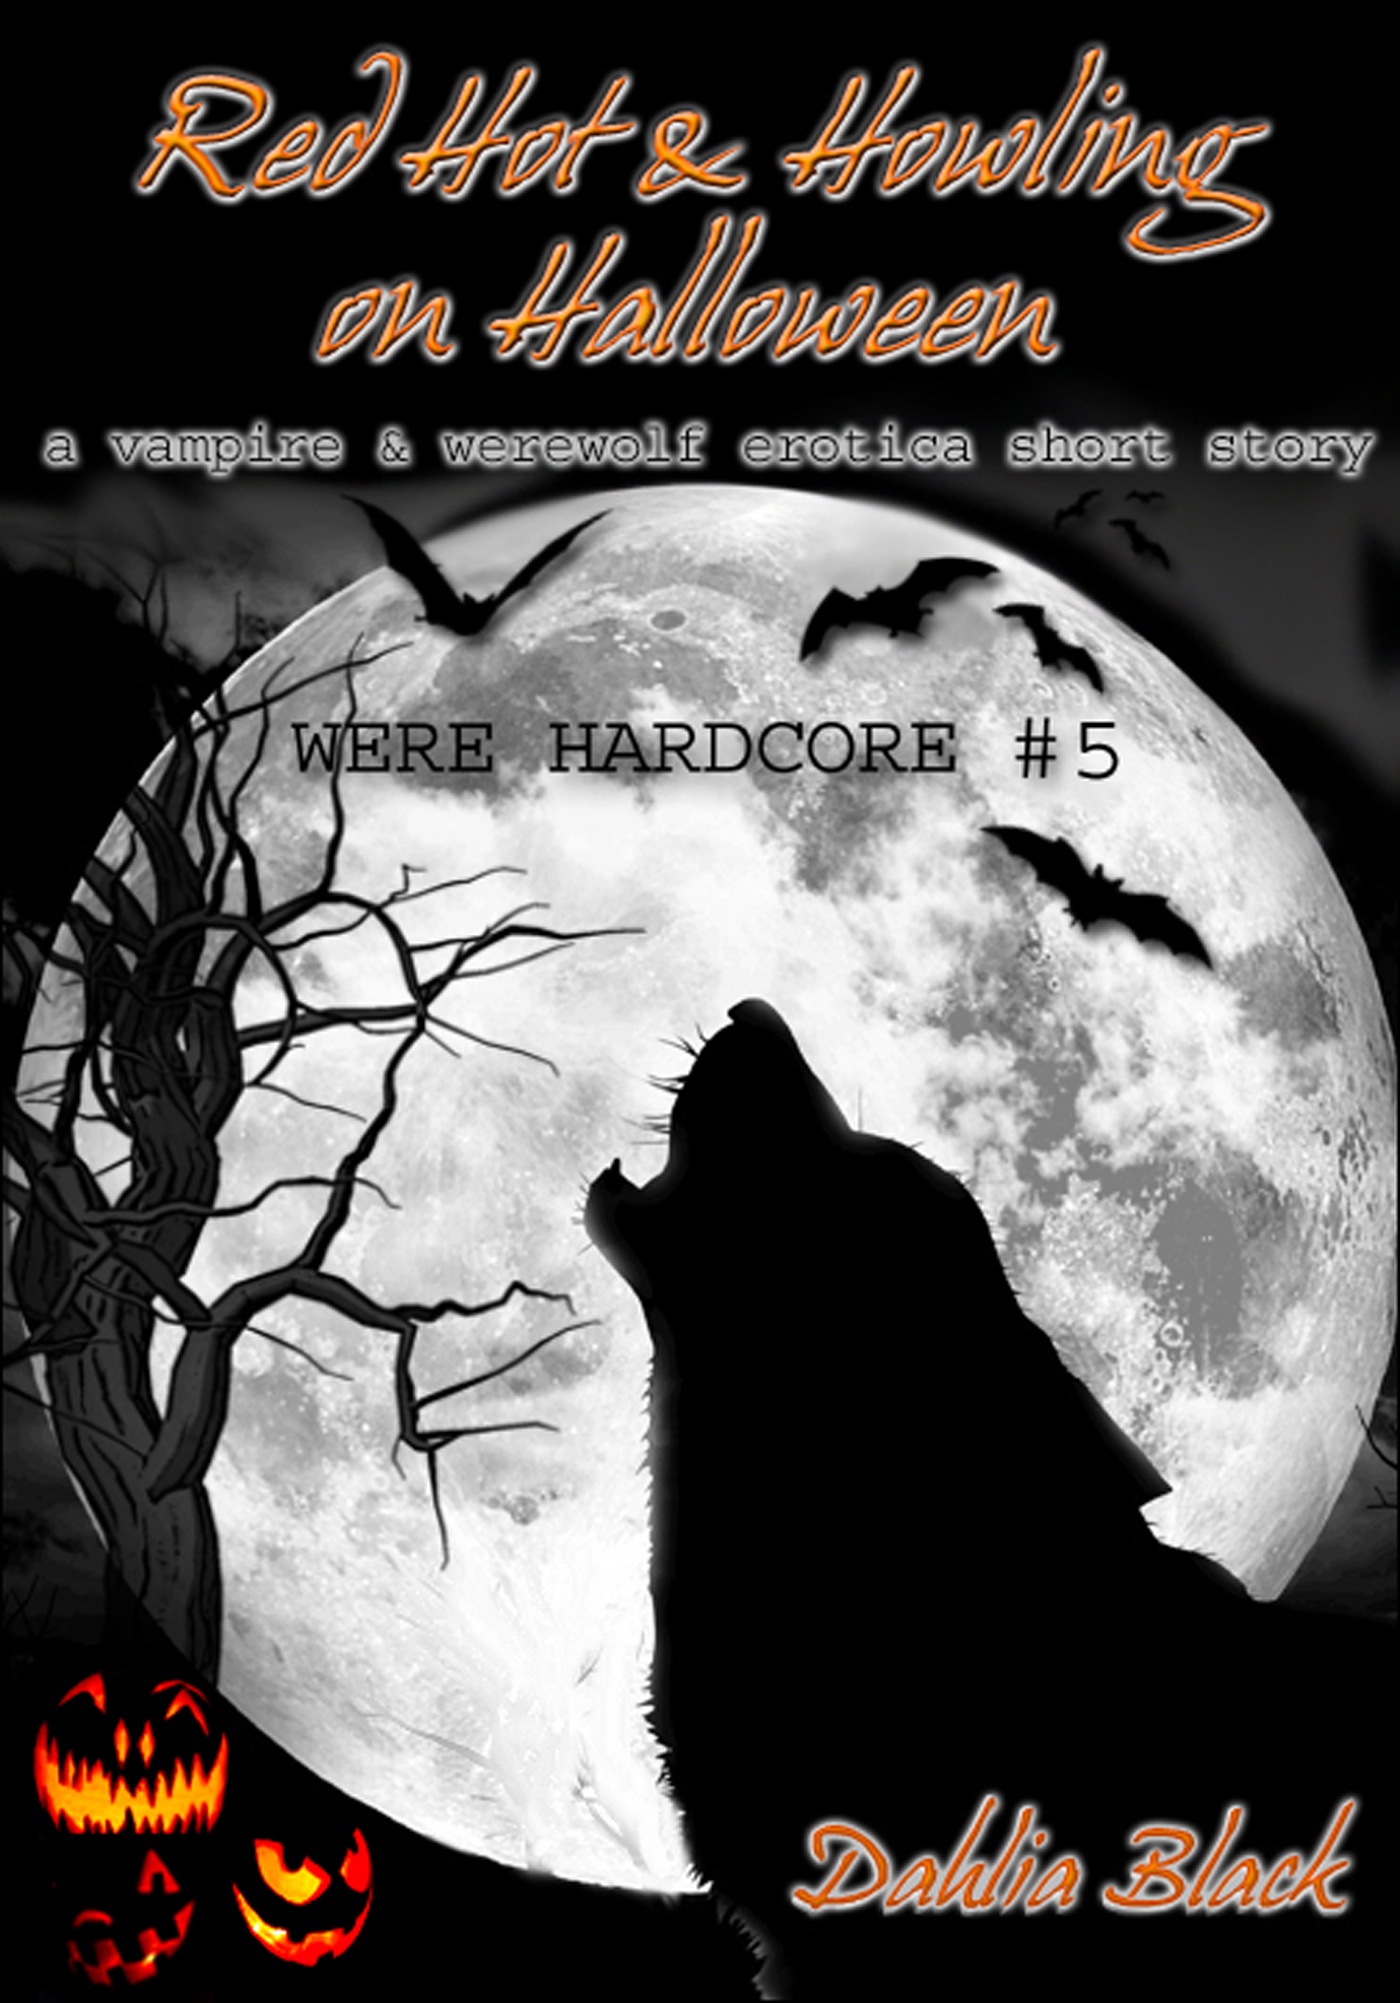 Dahlia Black - Red Hot & Howling on Halloween - A Vampire / Werewolf Erotic Short Story